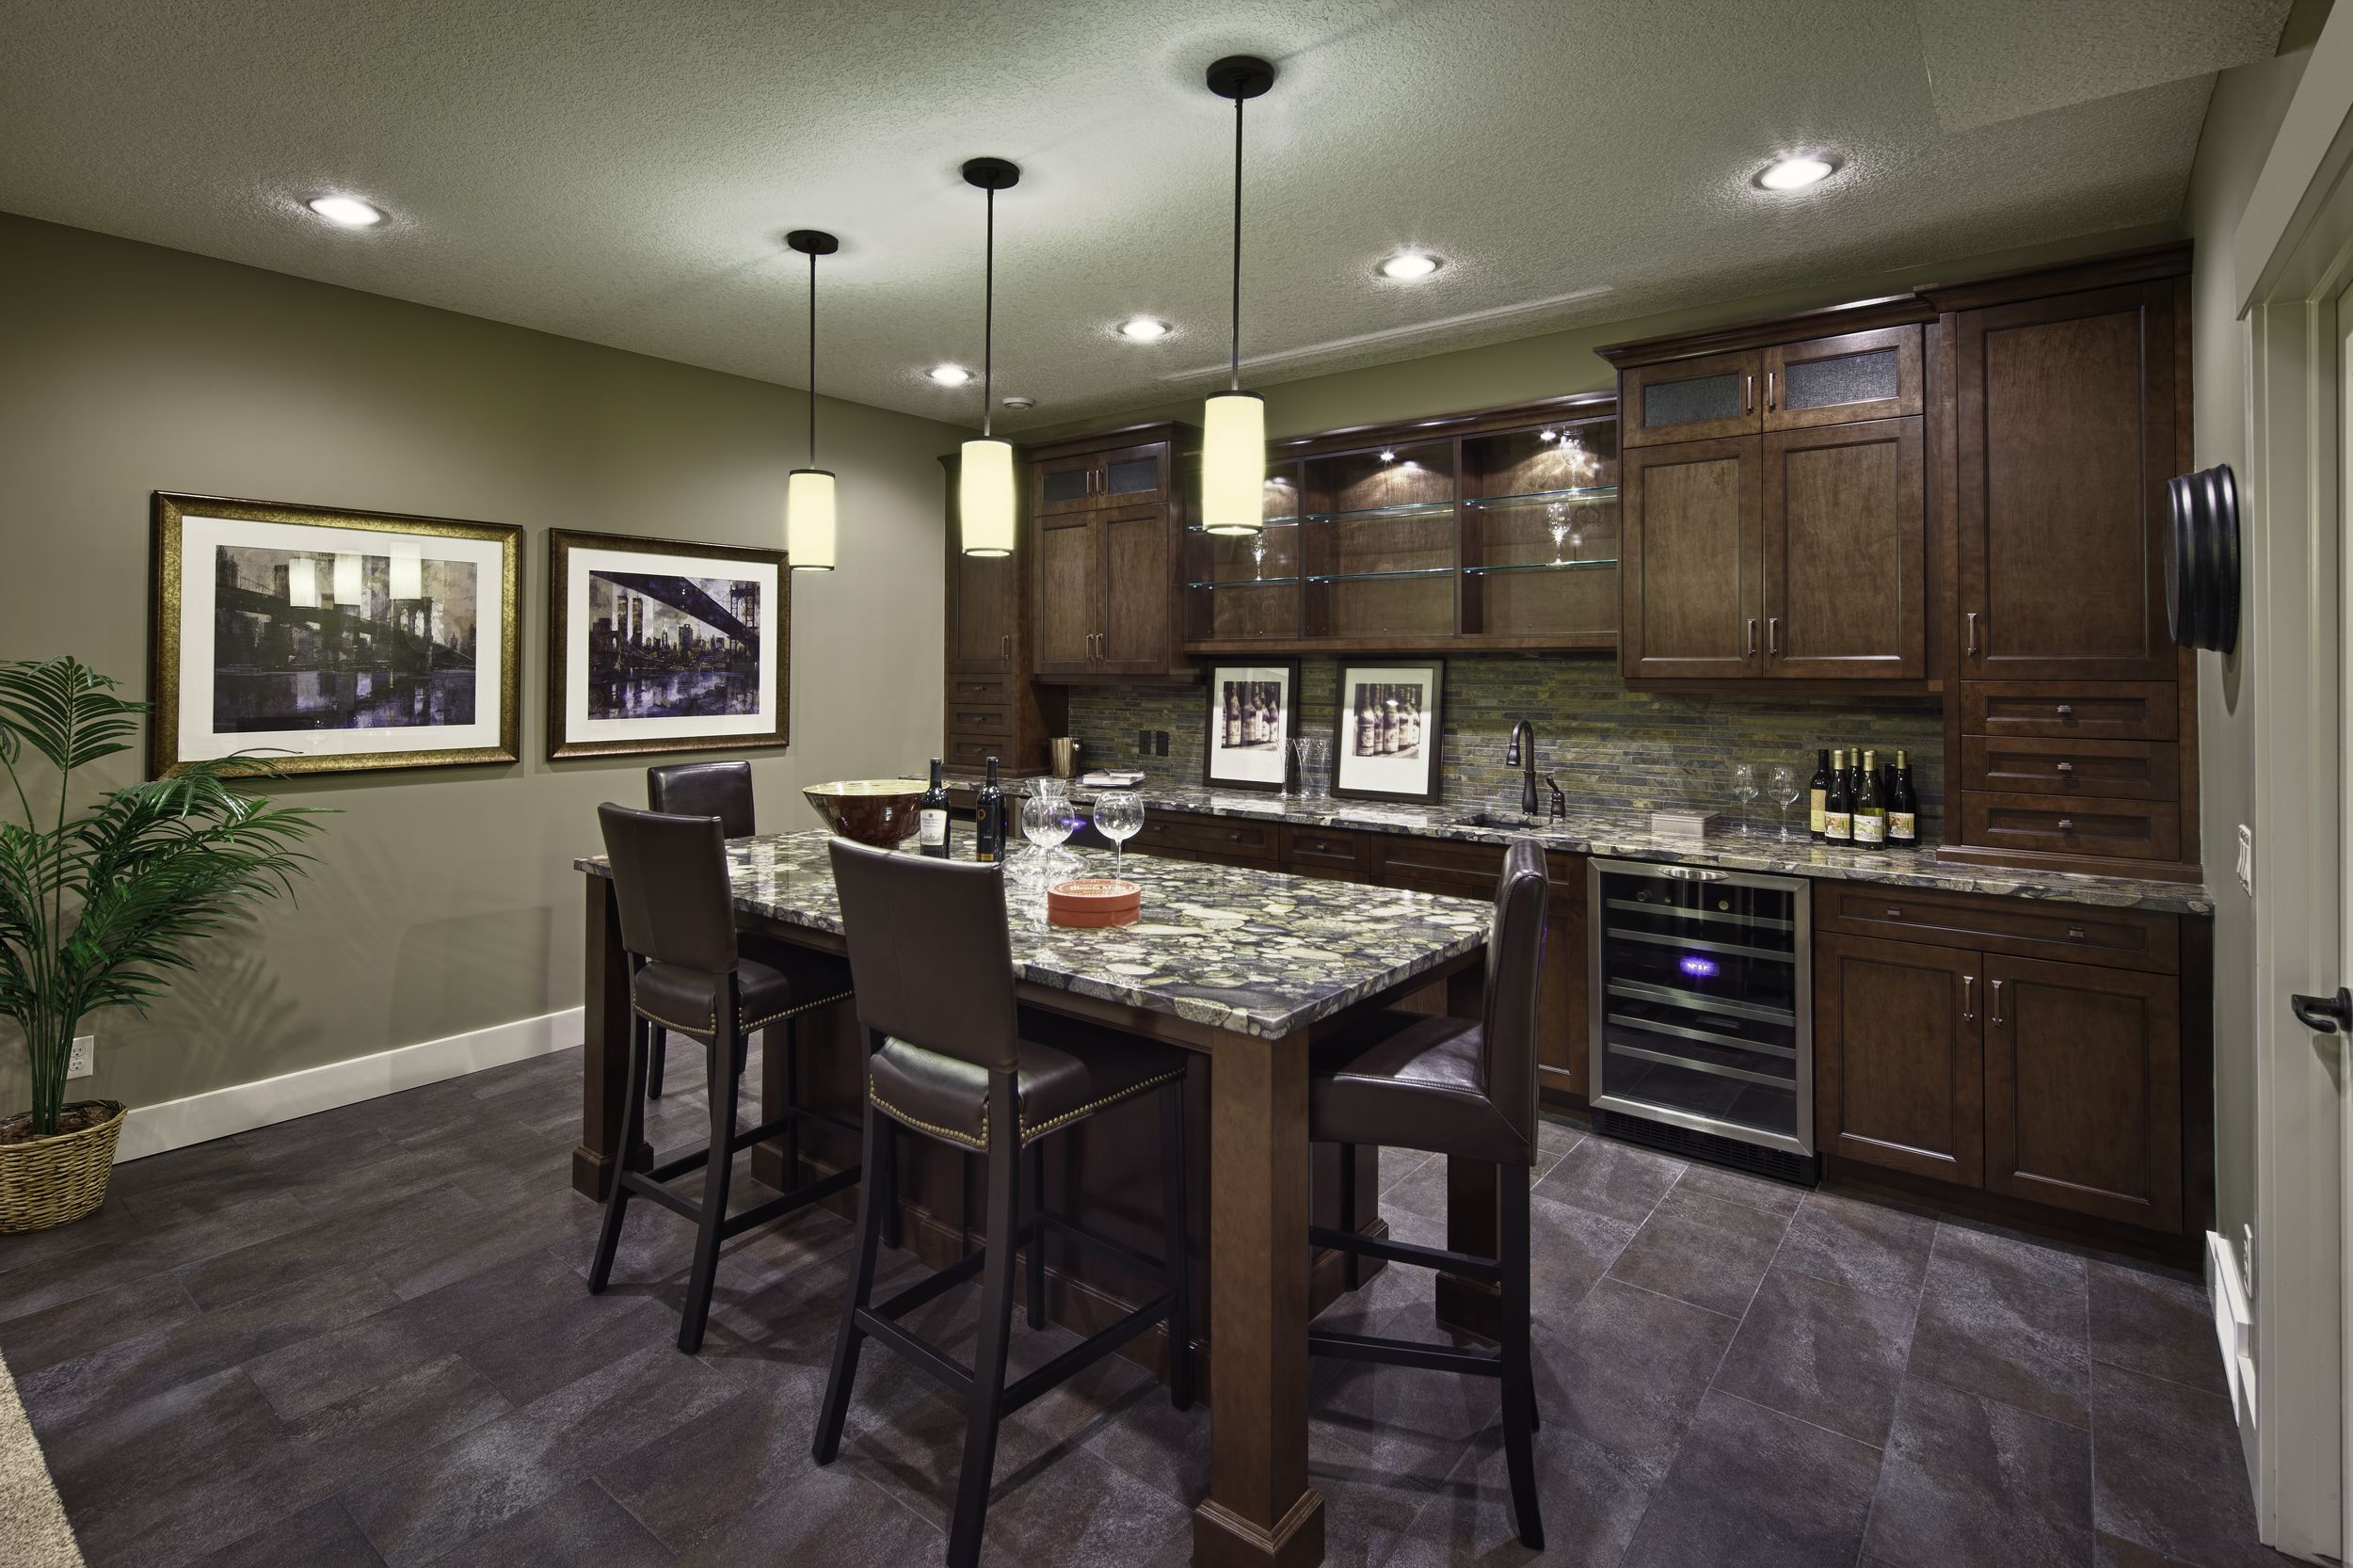 Developed Basement - built-in wet bar | Wet bar basement ...